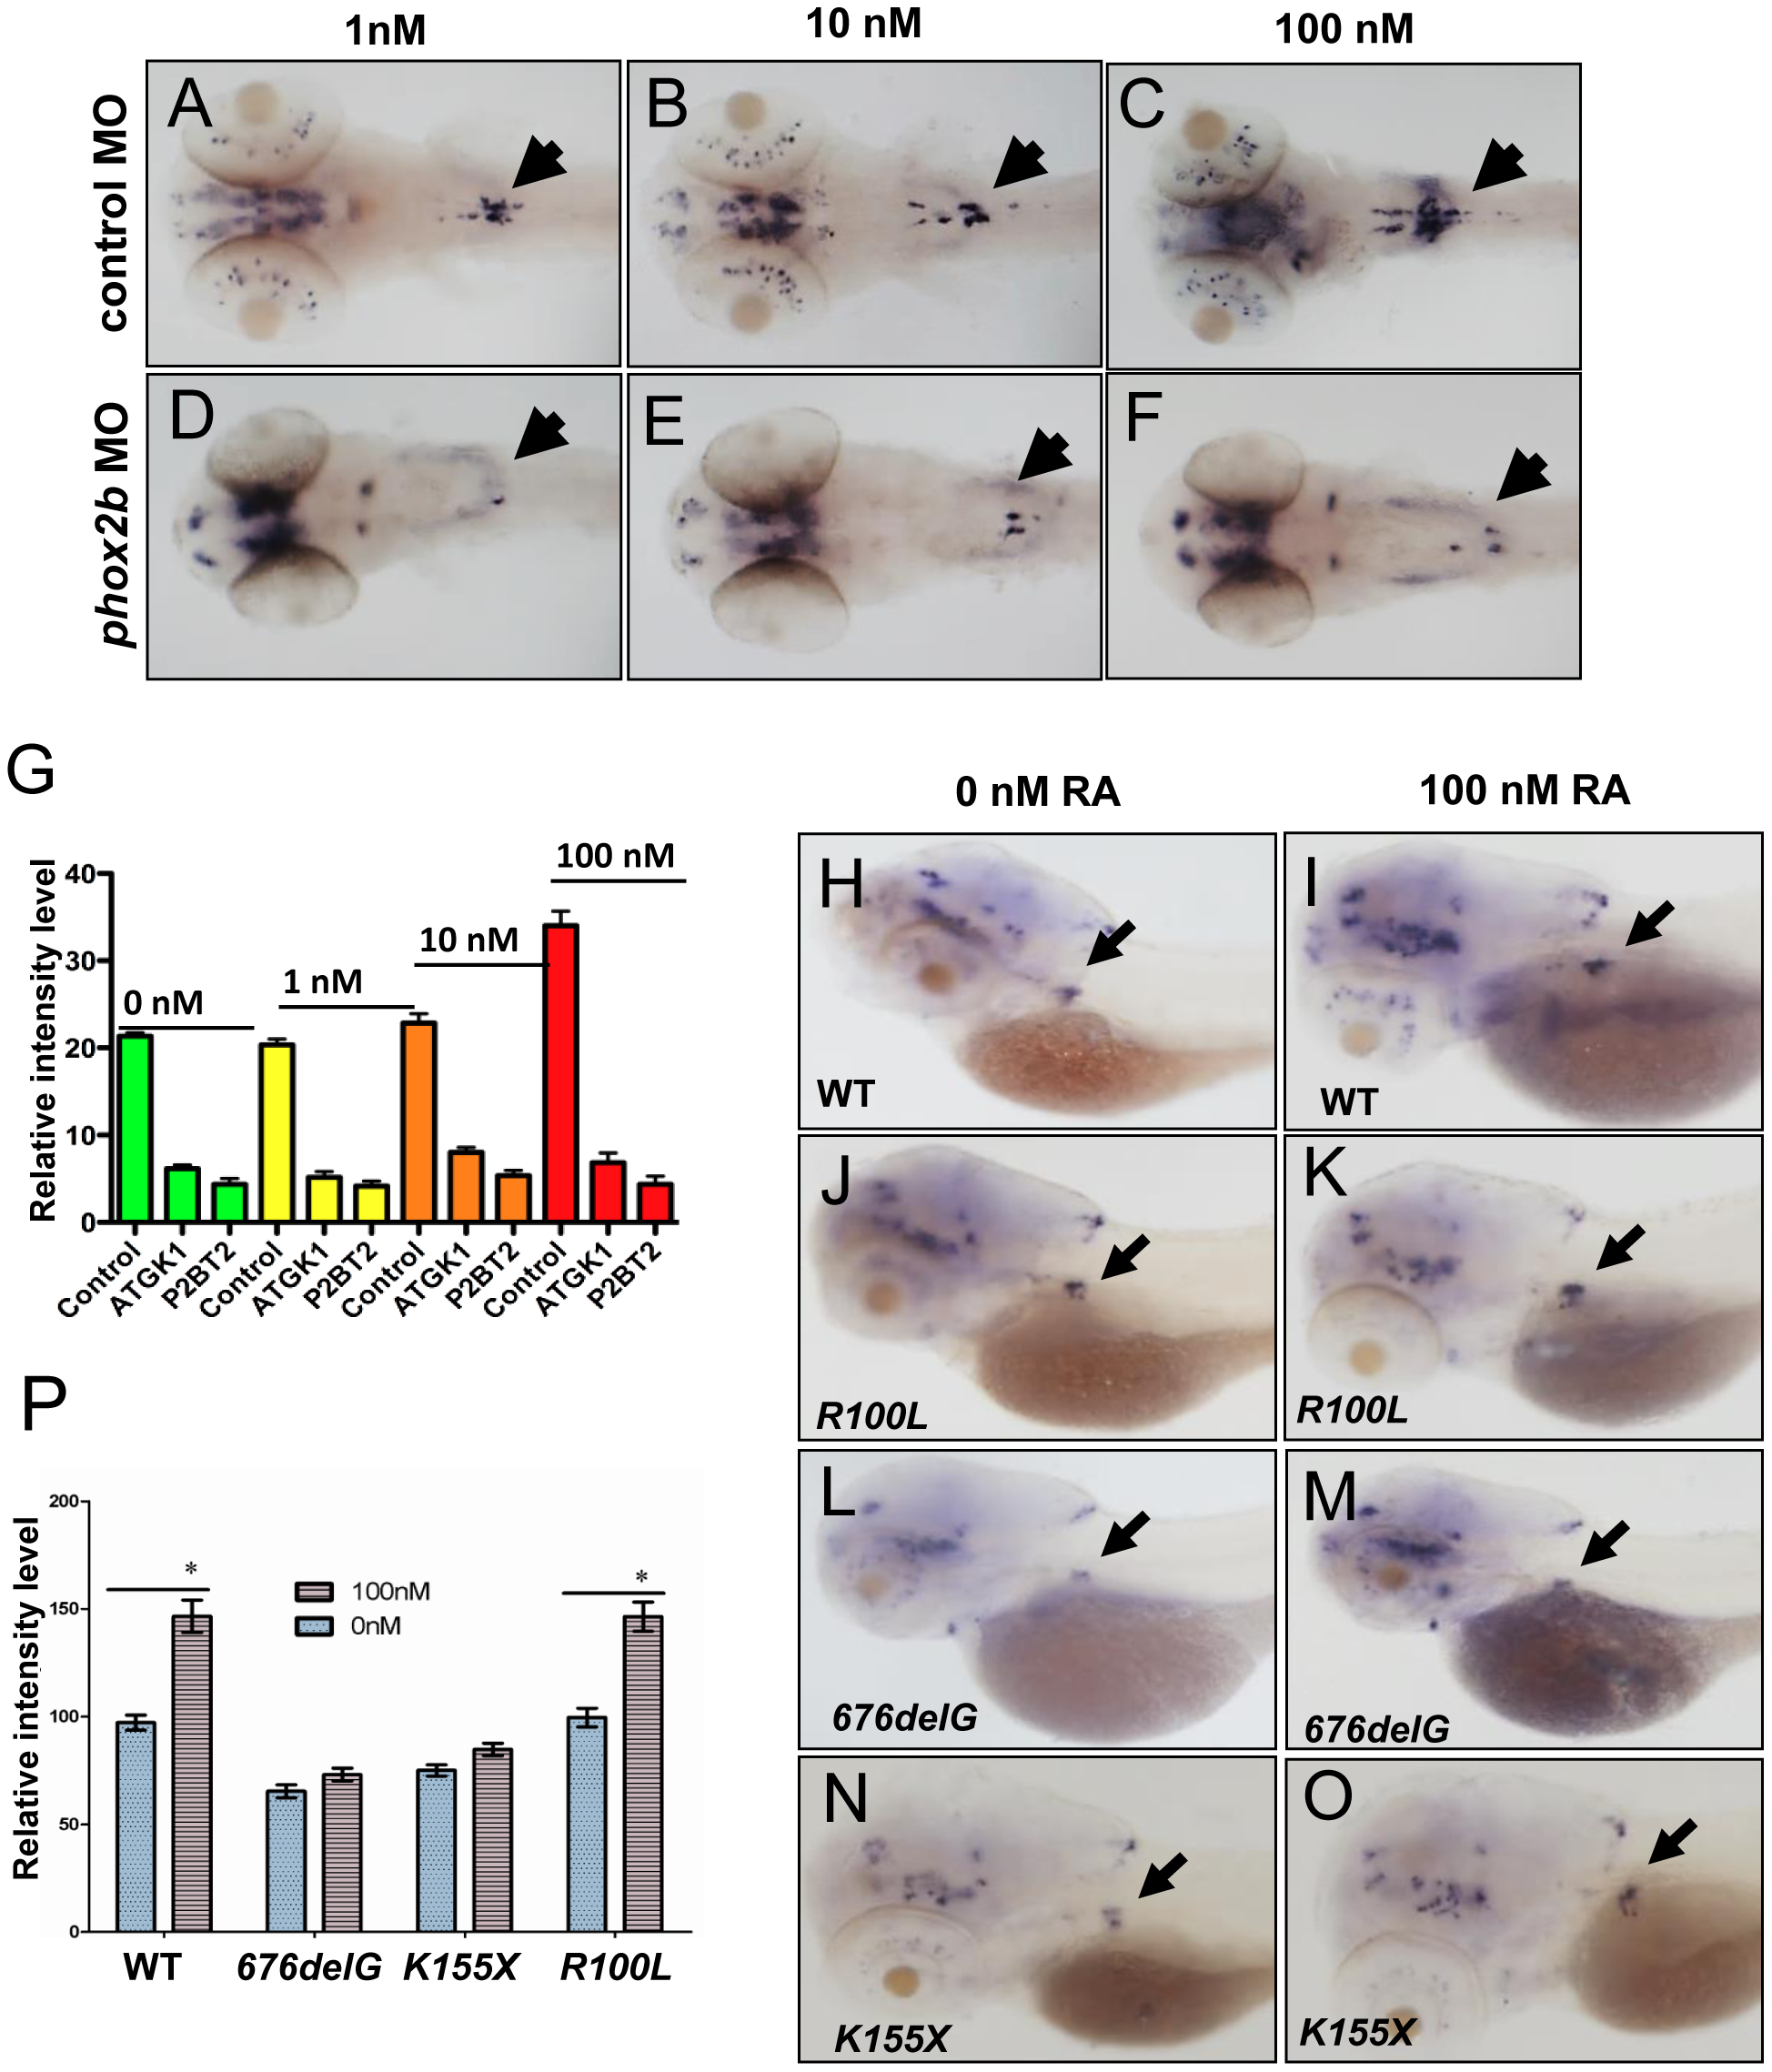 Impaired differentiation in the SCG due to <i>phox2b</i> deficiency is not rescued by retinoic acid.